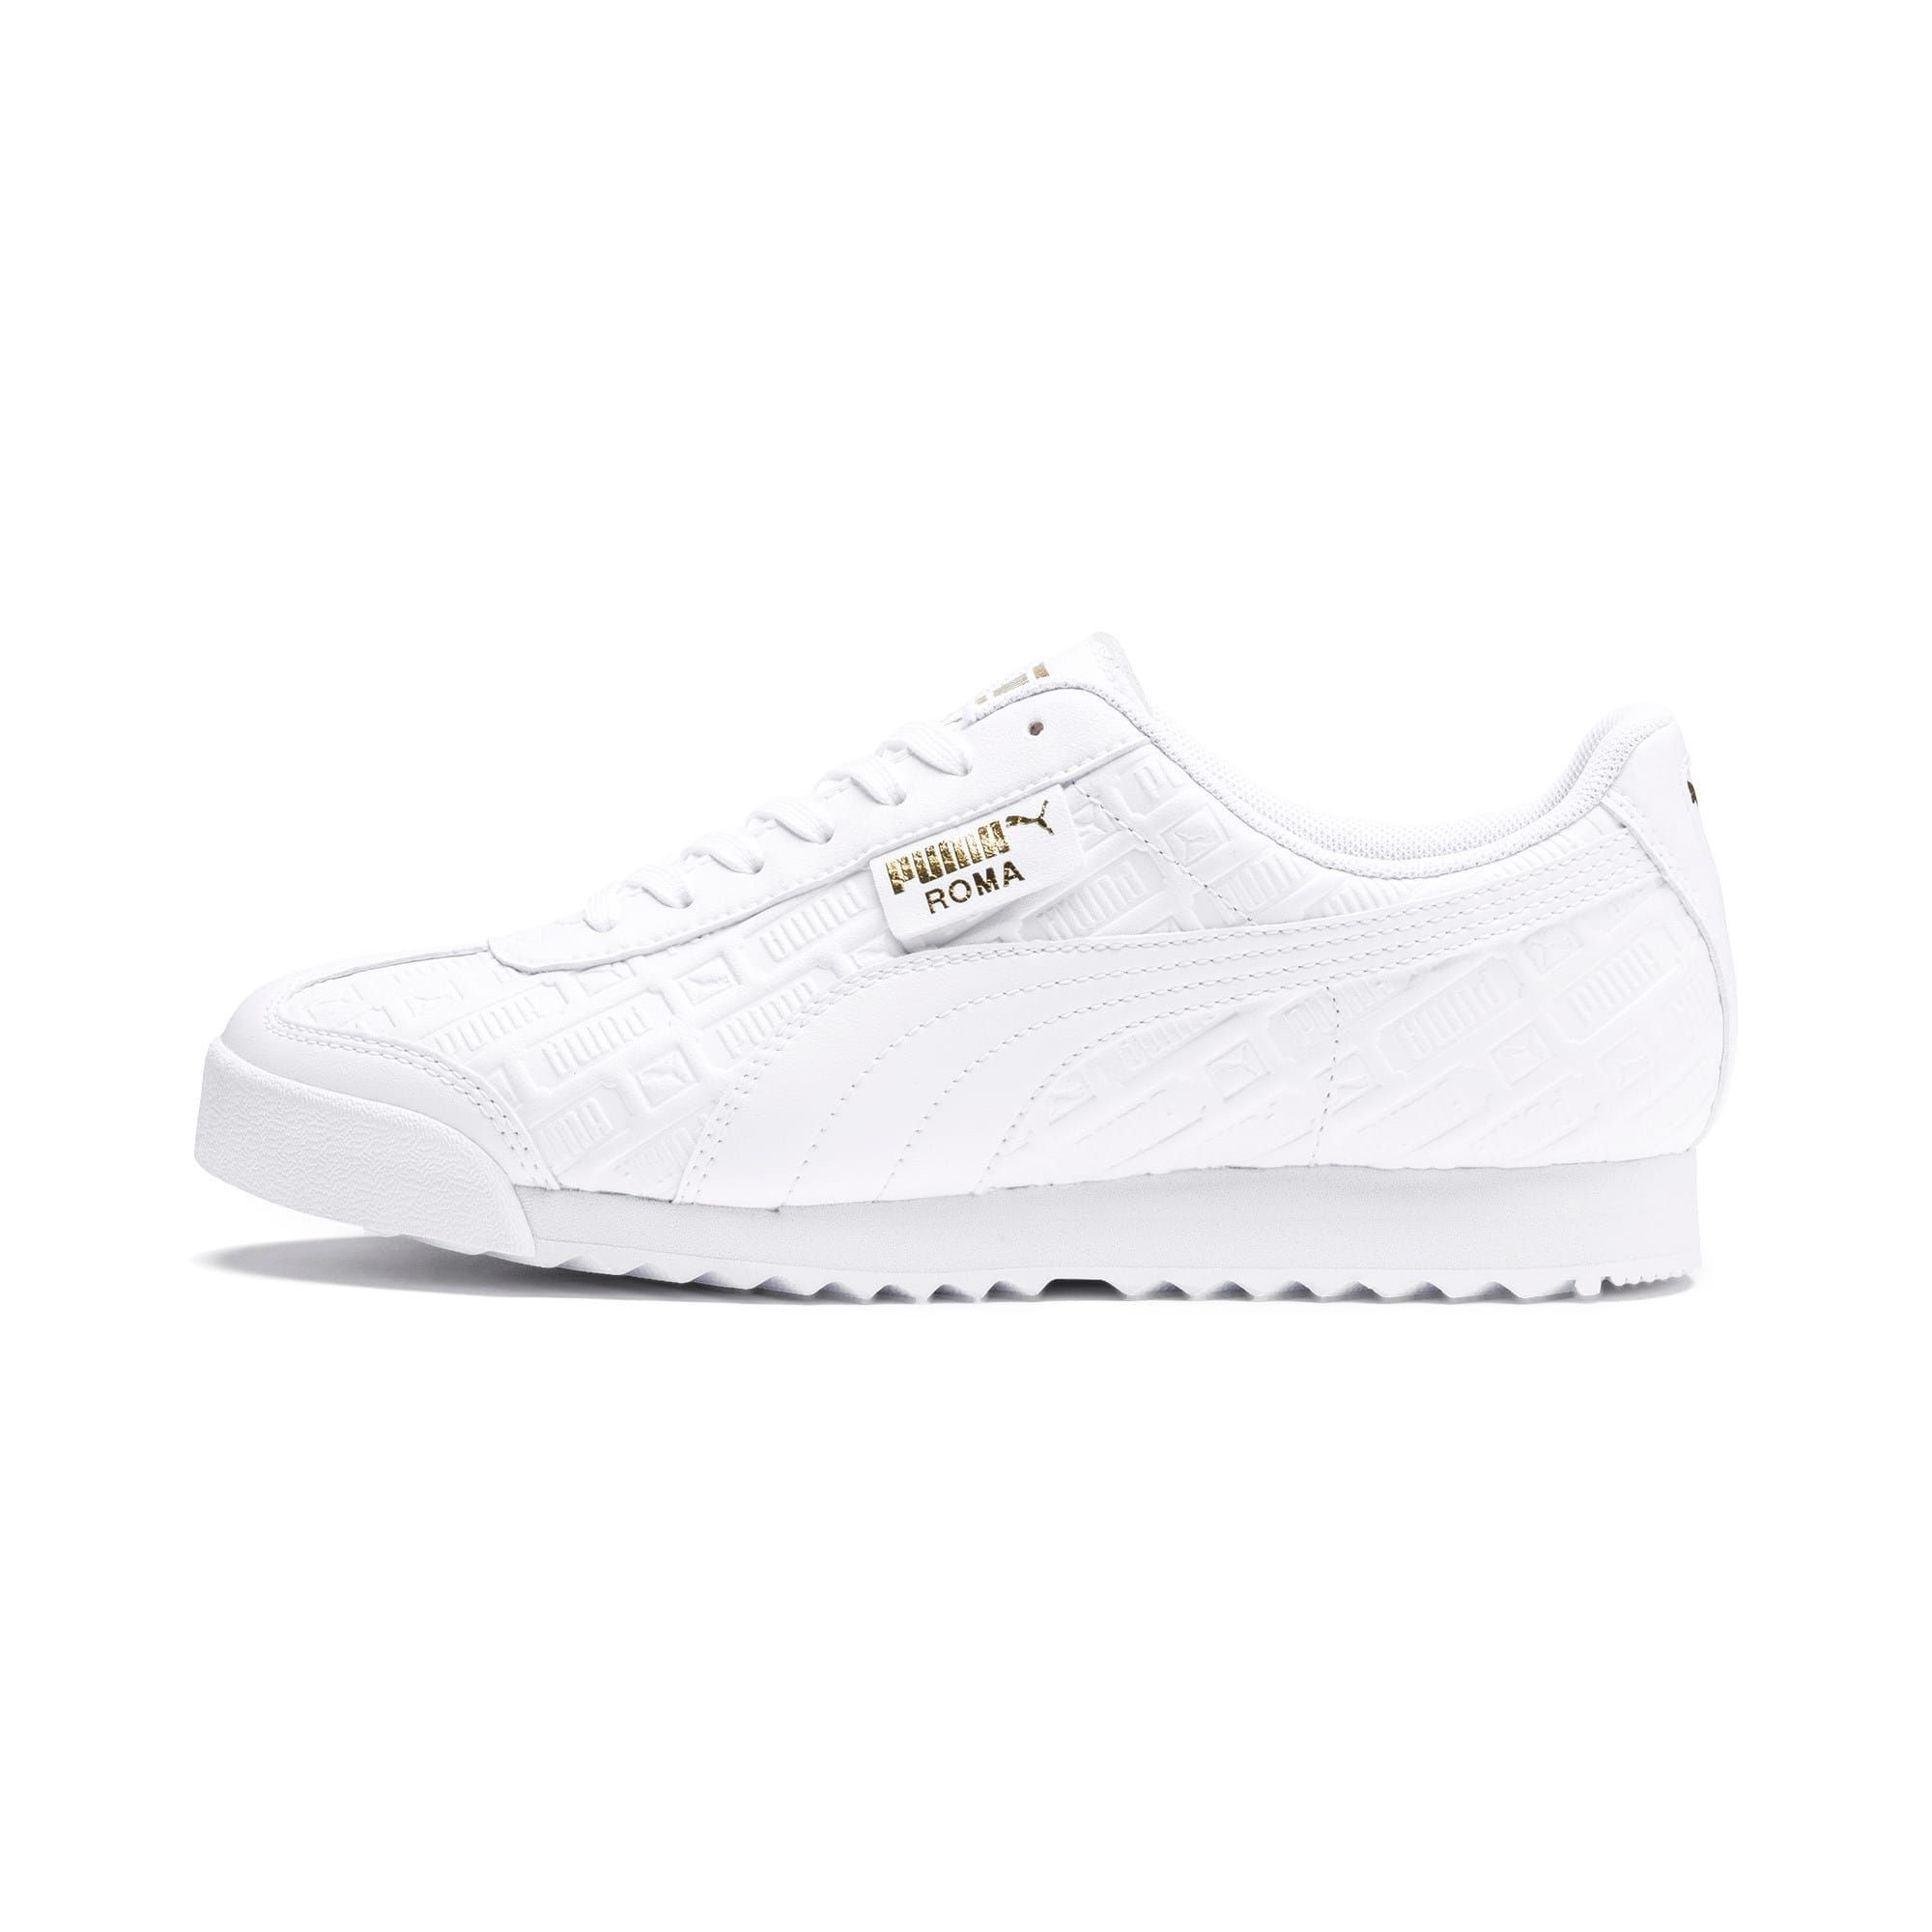 PUMA Roma Reinvent Women's Trainers in White/Gold size 4.5 ...